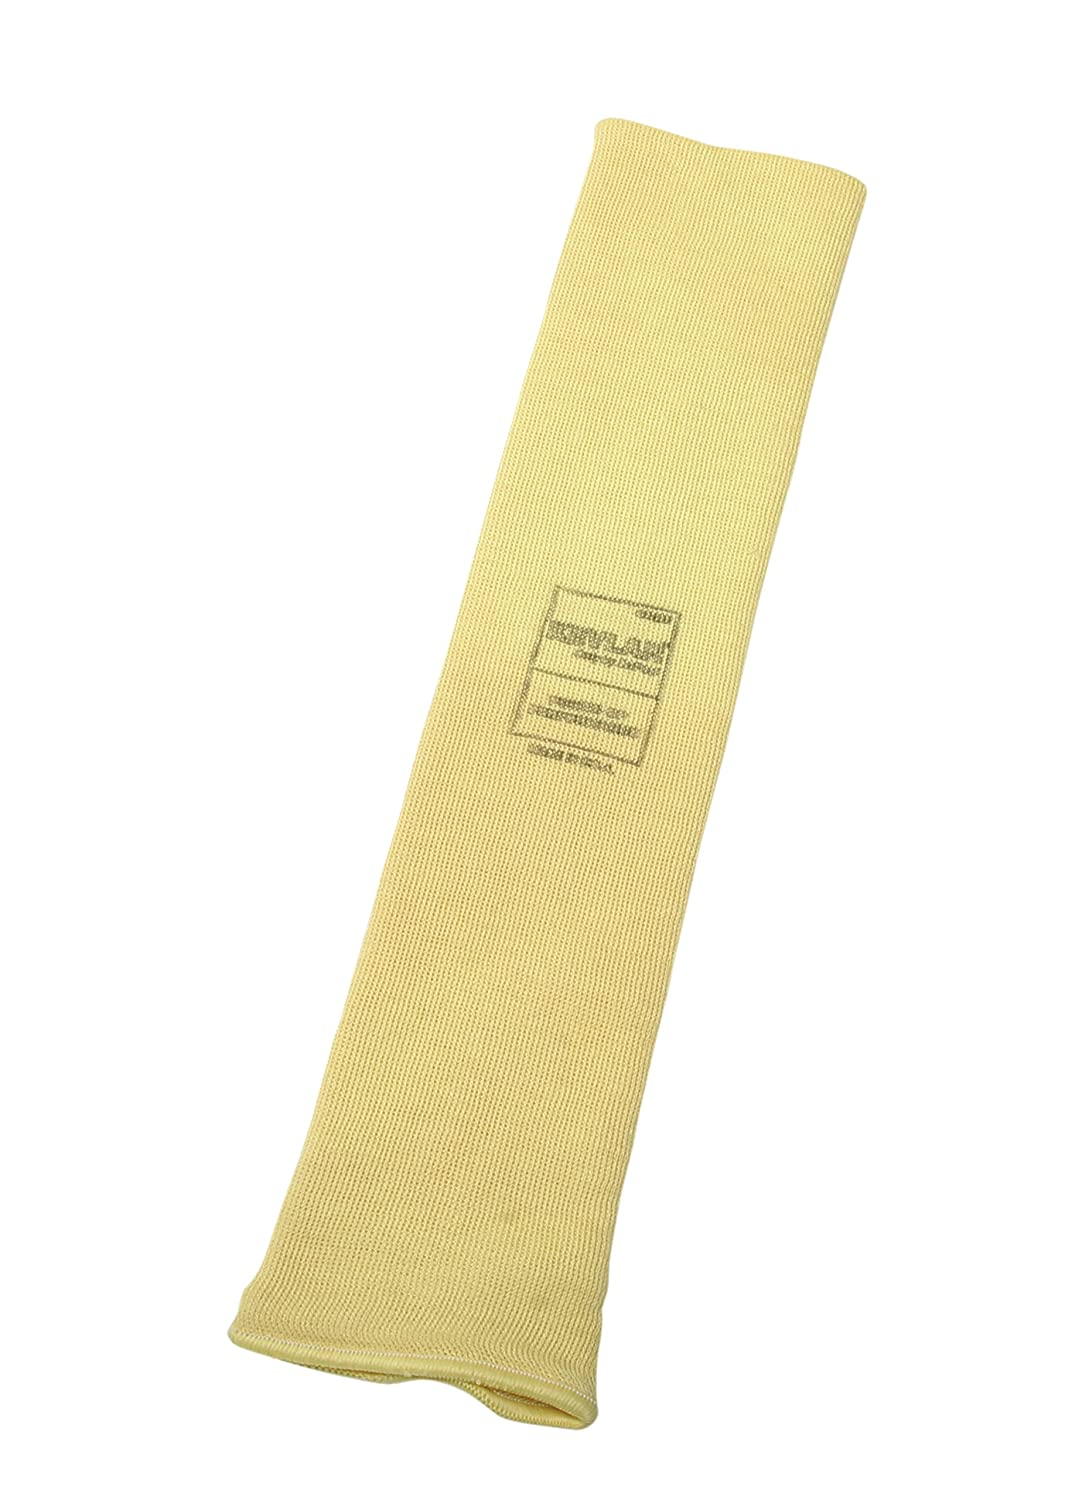 "Honeywell KVS-2-14TH-3BT Kevlar Arm Protection Sleeve, Thumbhole, 3 Bar-Tack for Fingers, 14"" (Pack of 100)"